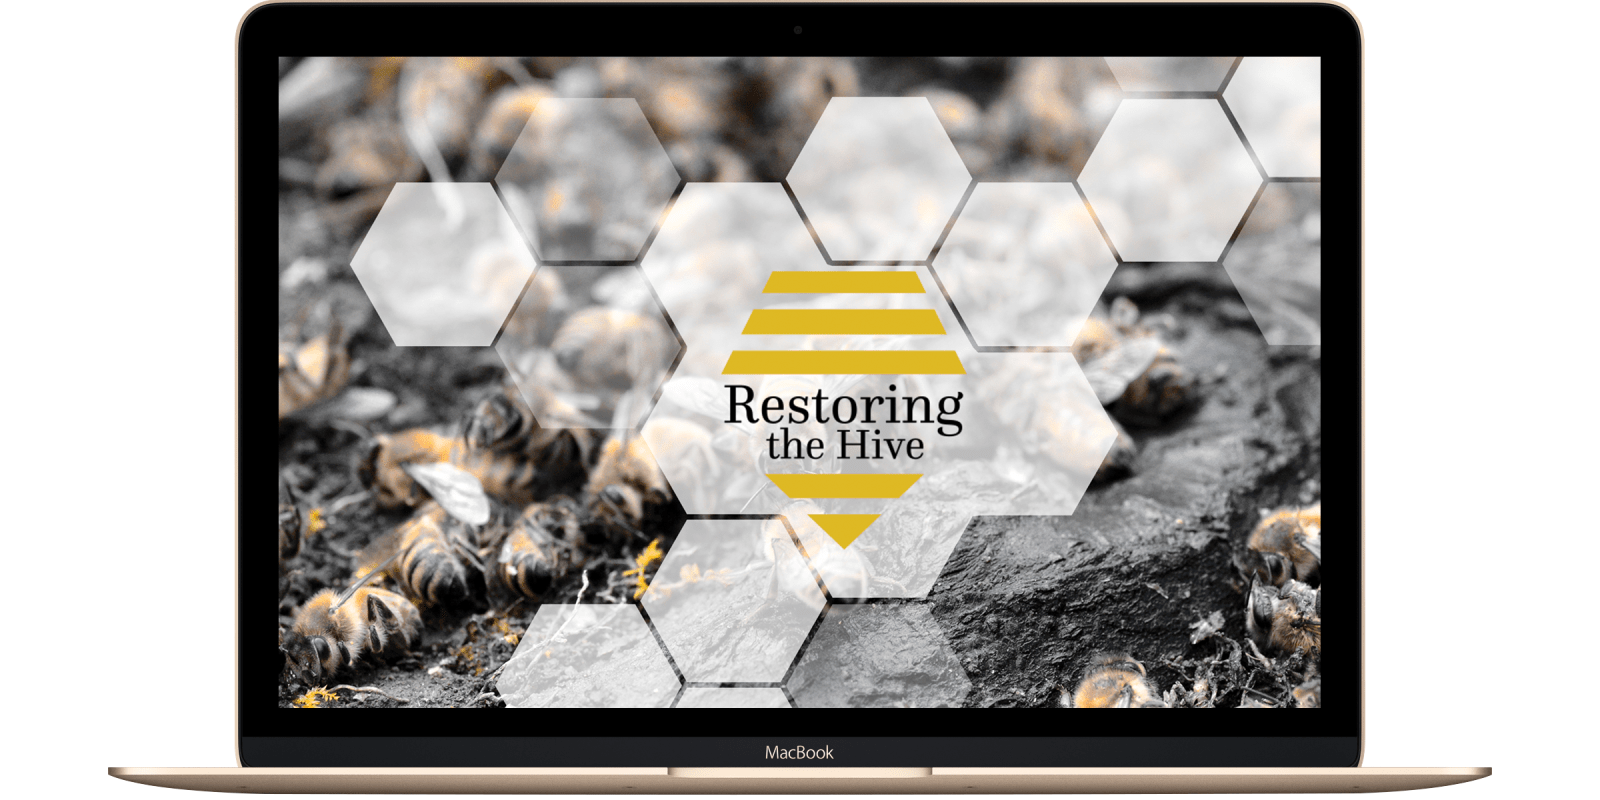 RESTORING THE HIVE